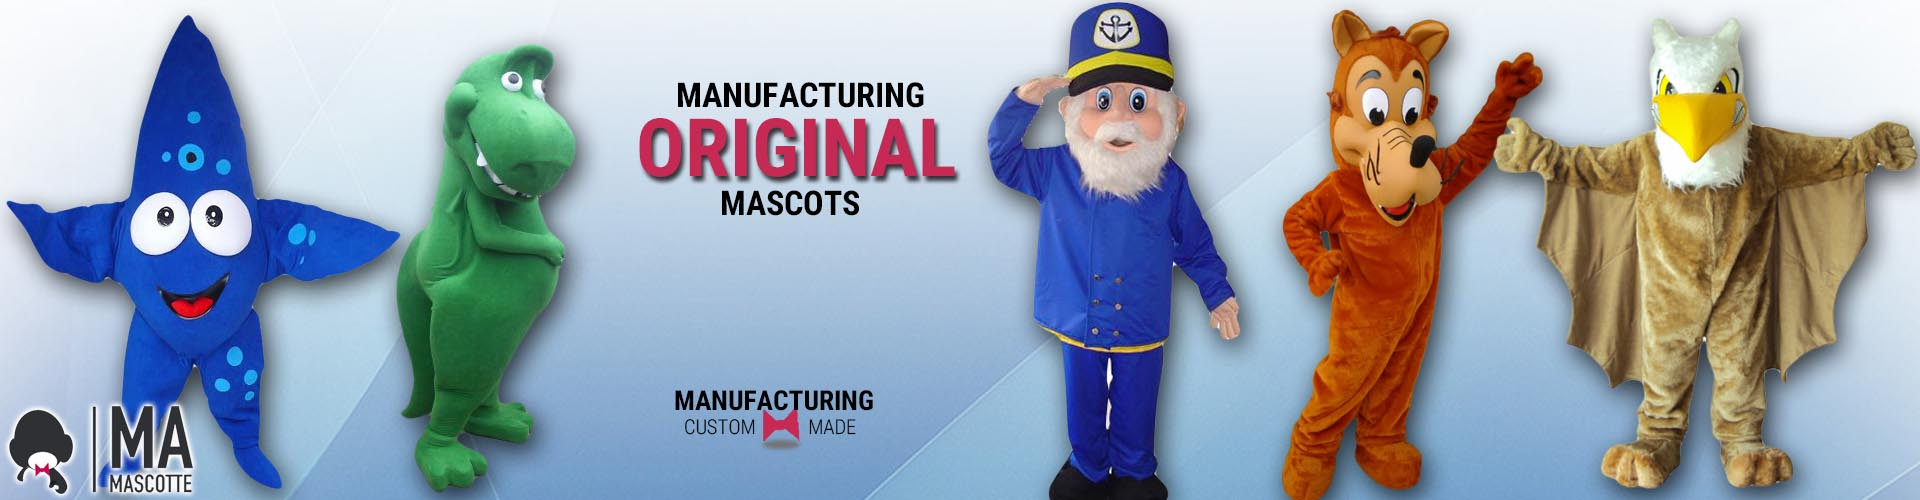 CUSTOM MADE MASCOT COSTUME MANUFACTURING AND CREATION